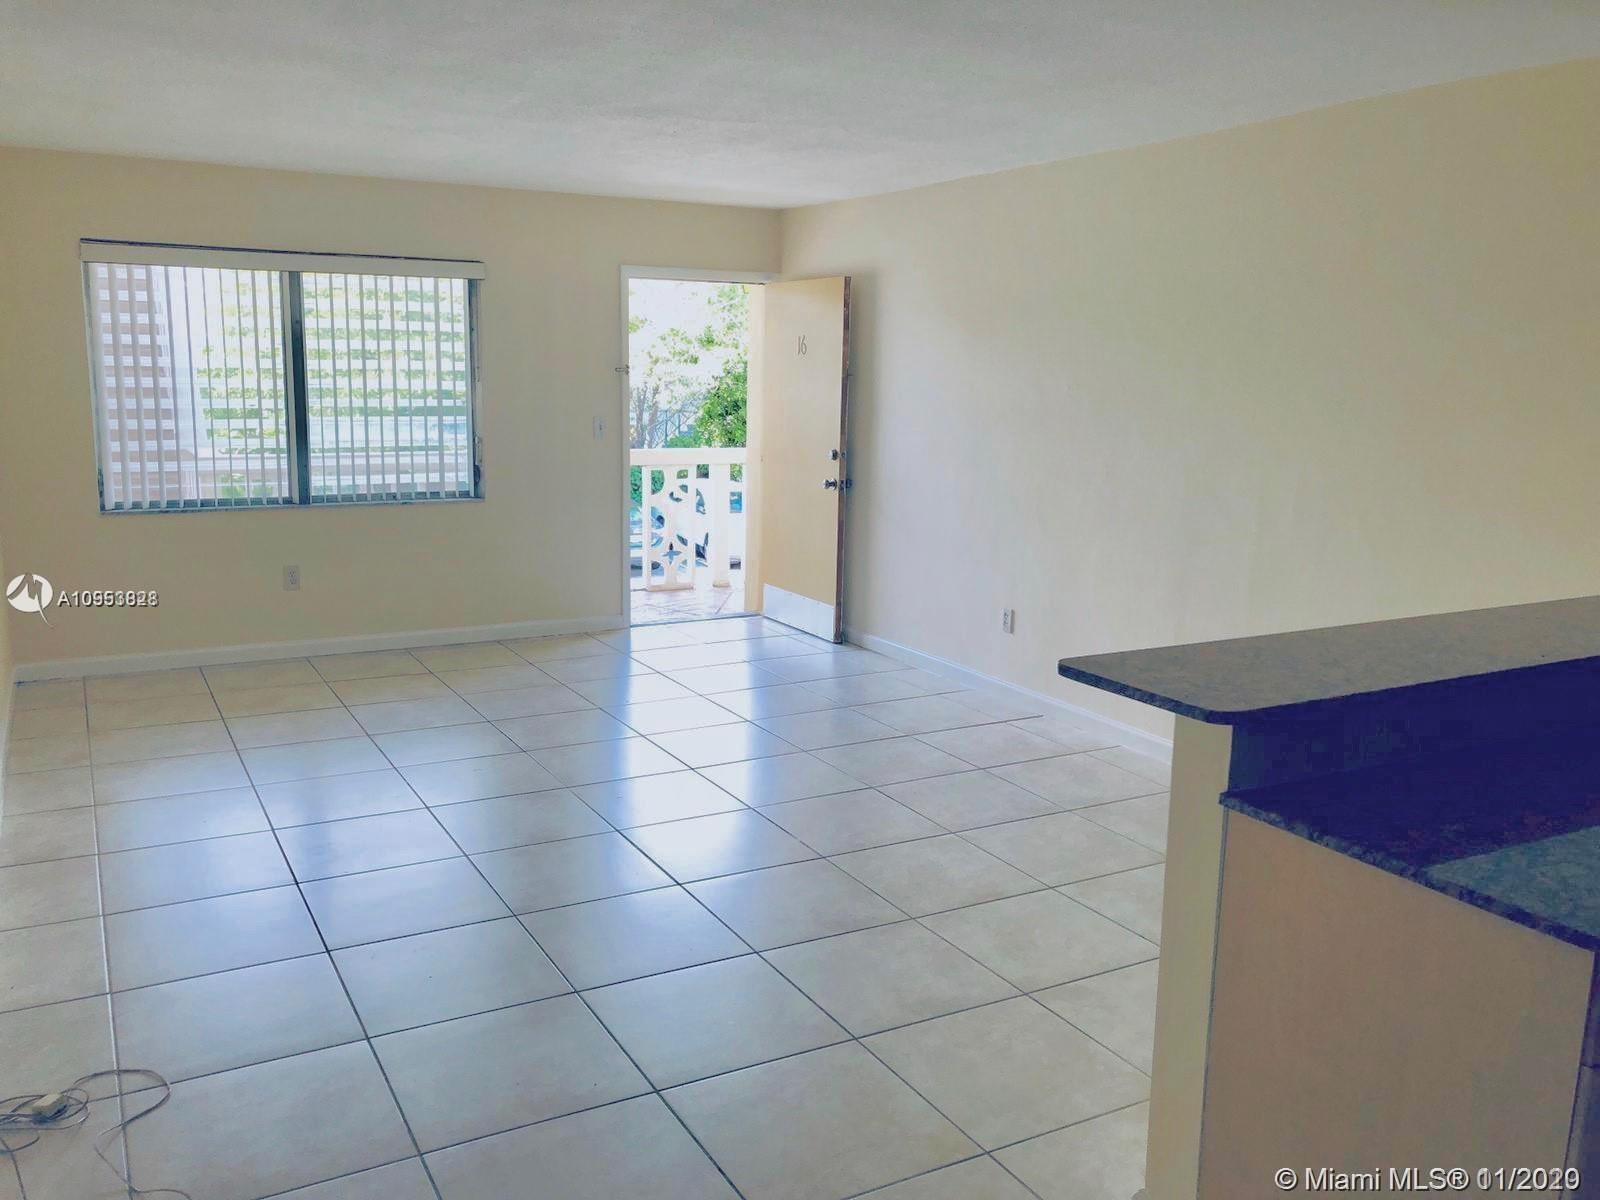 Impecable unit 1bedroom 1 bath at Golden Key Condo located in the heart of Bay Harbor Islands. One parking space included. Unit has tile floors, granite counter tops in kitchen with wood cabinets, new A/C unit. Unit is rented.